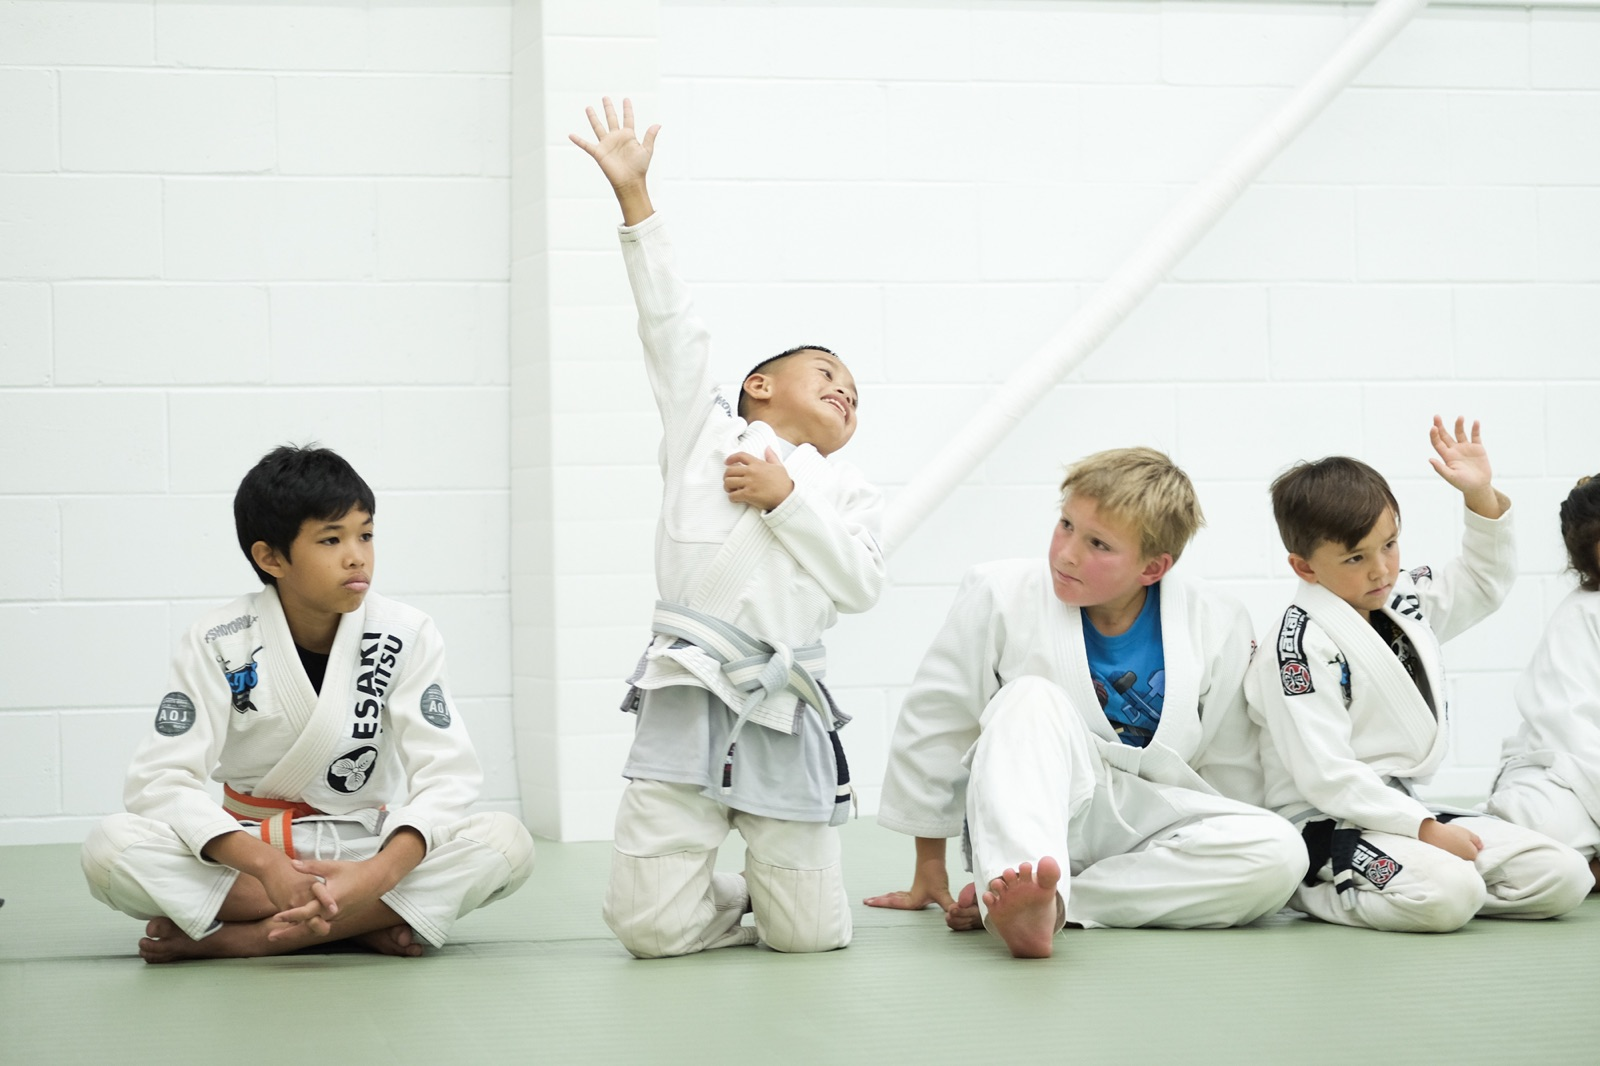 Kids - Our kids program is for kids and teens of all levels. Whether your child is looking to just have fun in an after school hobby, get some exercise, or wants to prepare for entering jiujitsu competitions, we have training for everyone. We teach kids how to work well with each other, the value of discipline and good physical training, all while providing a fun and safe environment.Learn more ➝